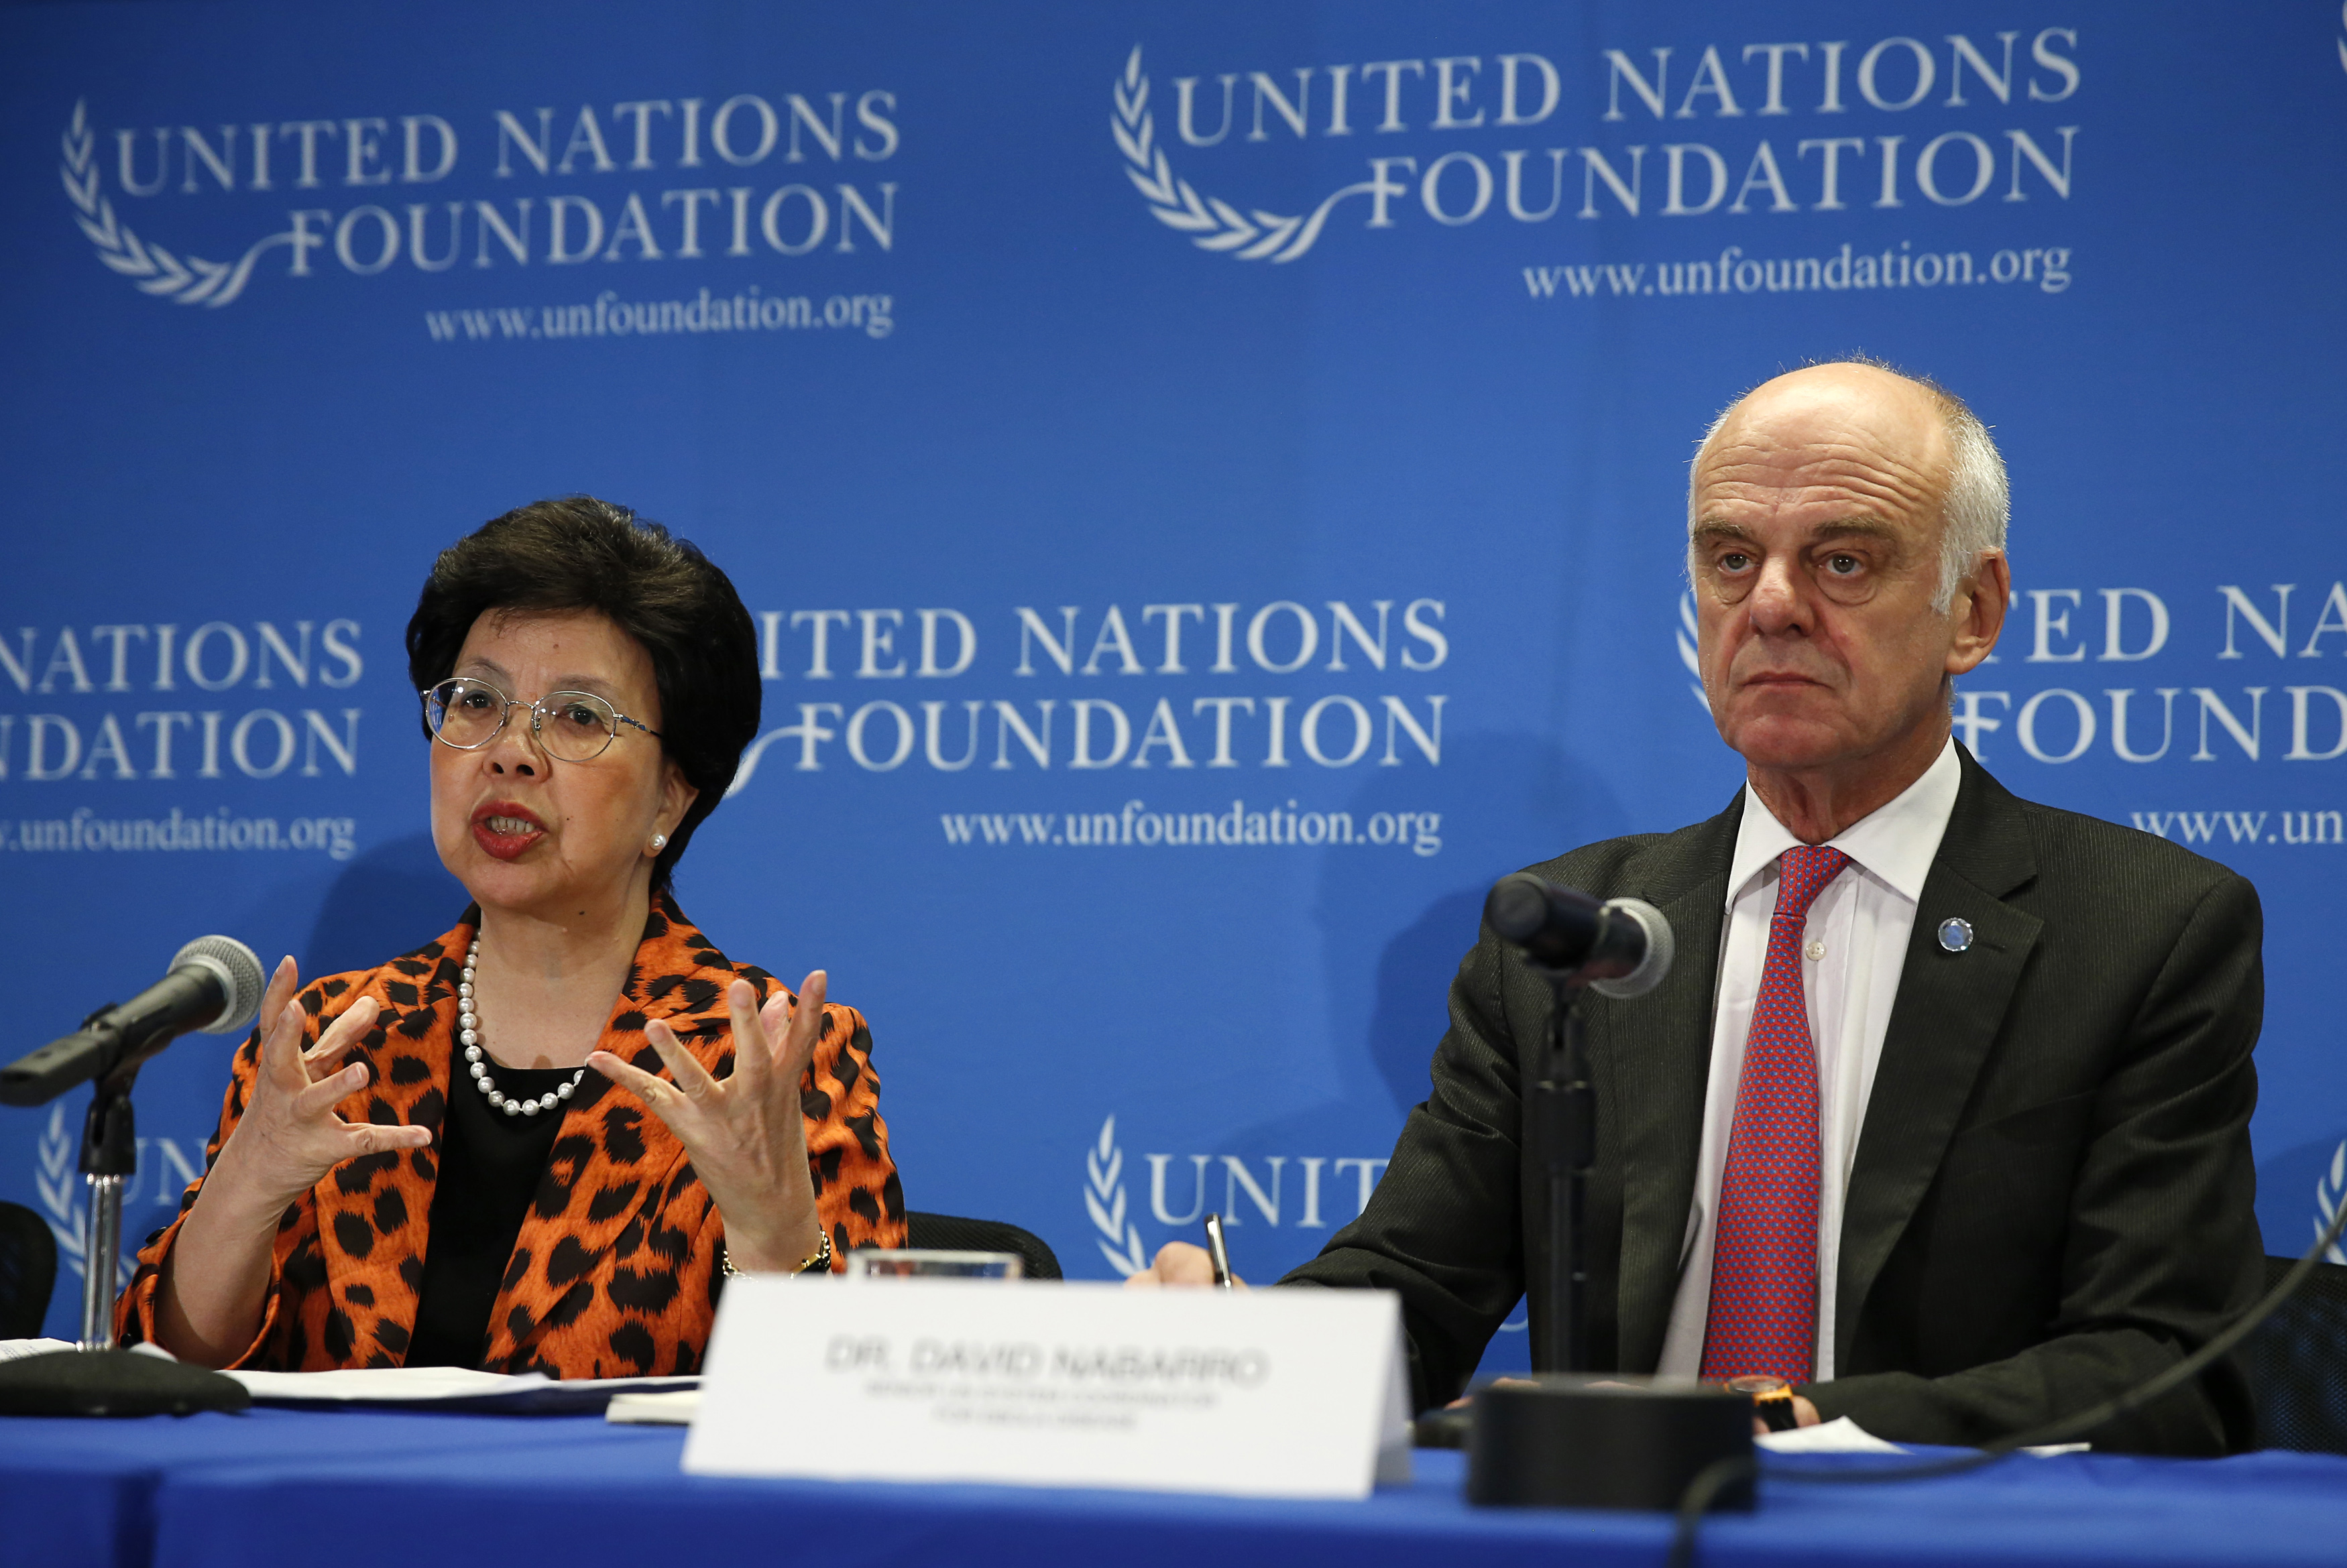 World Health Organization (WHO) Director-General Dr. Margaret Chan (L) and Senior United Nations System Coordinator for Ebola Virus Disease Dr. David Nabarro appear at a briefing to discuss the Ebola outbreak in West Africa at the UN Foundation in Washington on September 3, 2014.